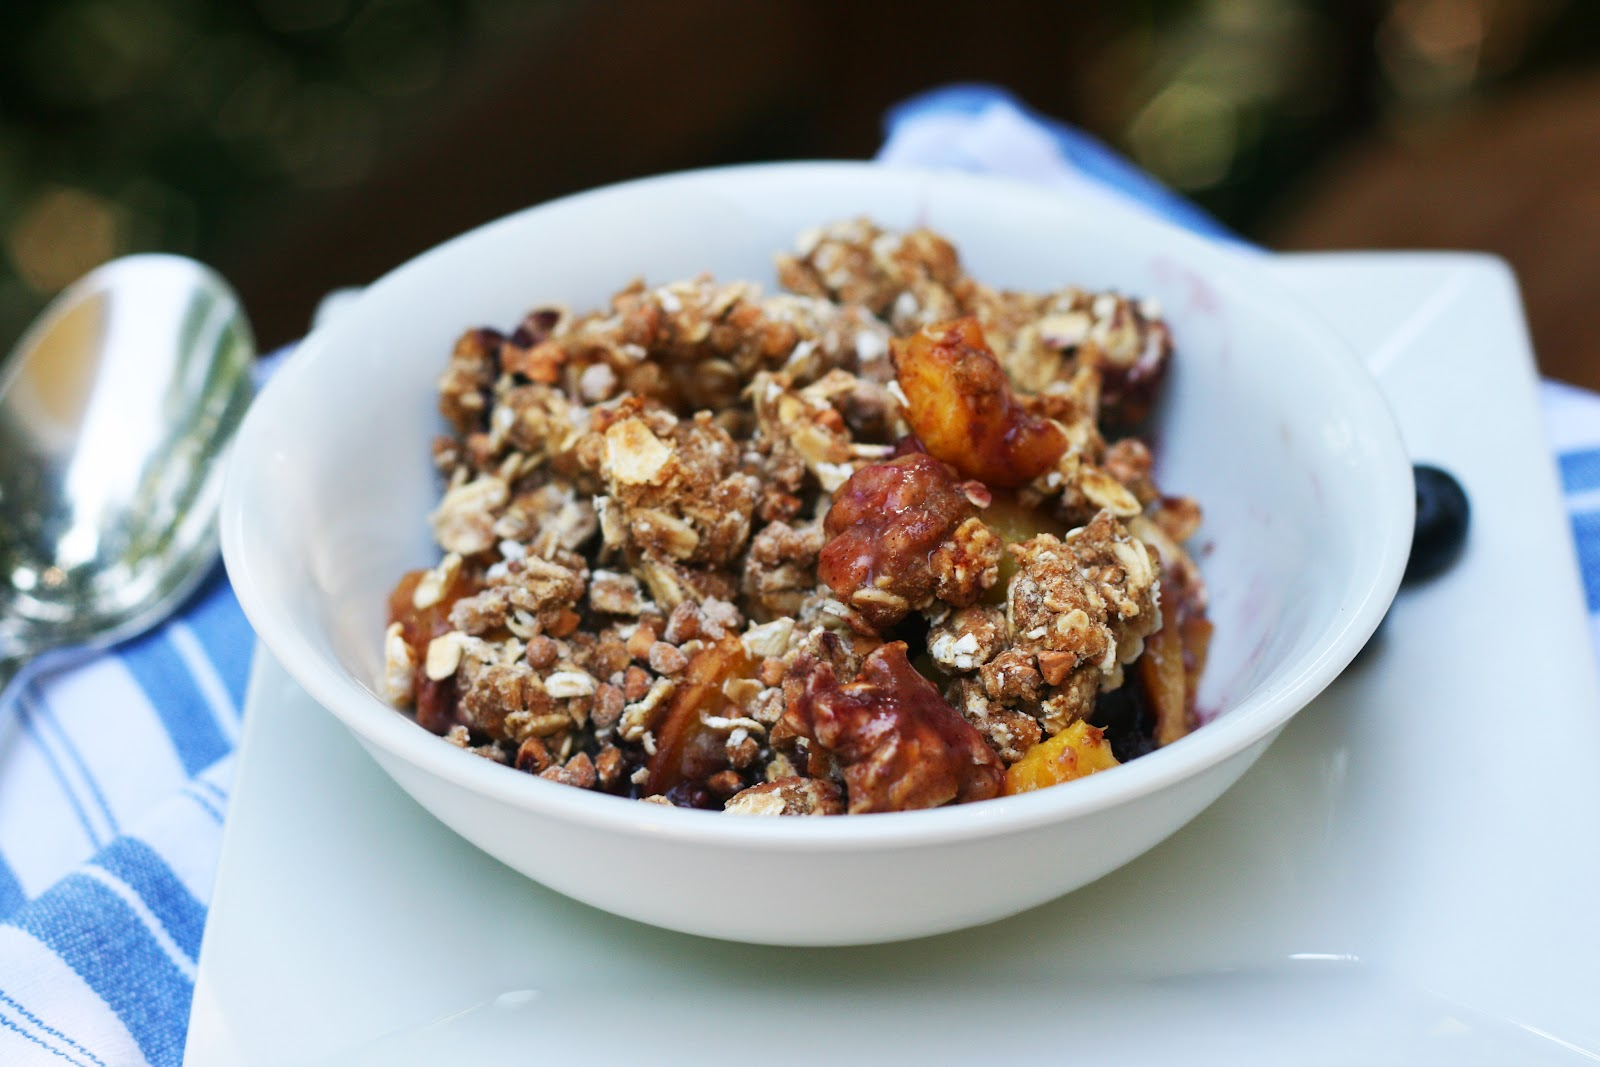 Mix it Up: Peach Blueberry Breakfast Crumble